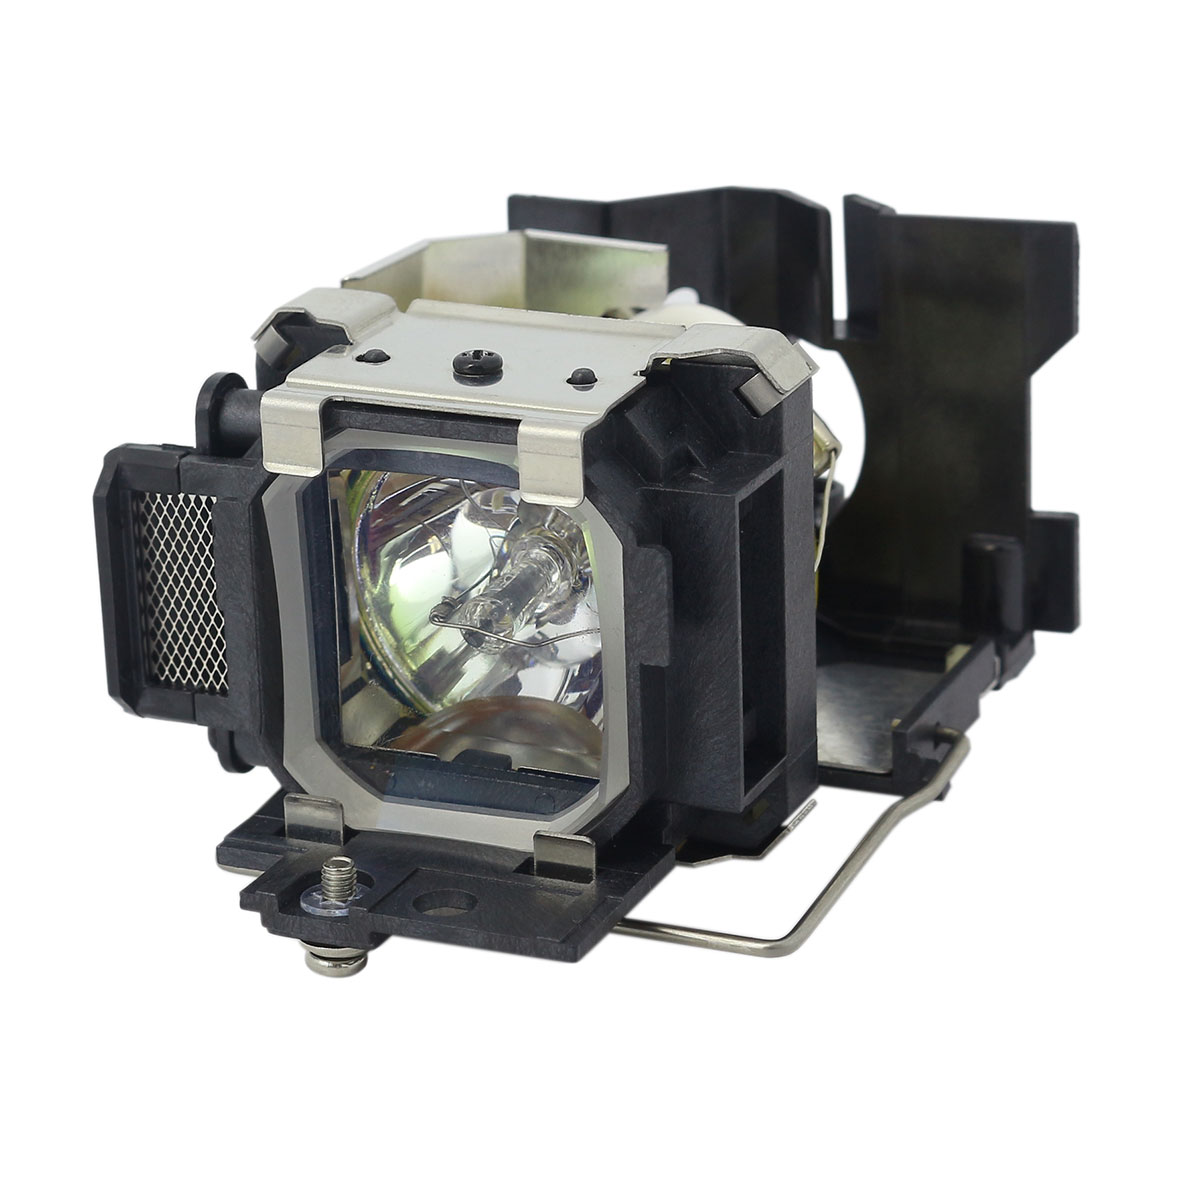 Sony Es3 Projector Lamp New Uhp Bulb At A Low Price